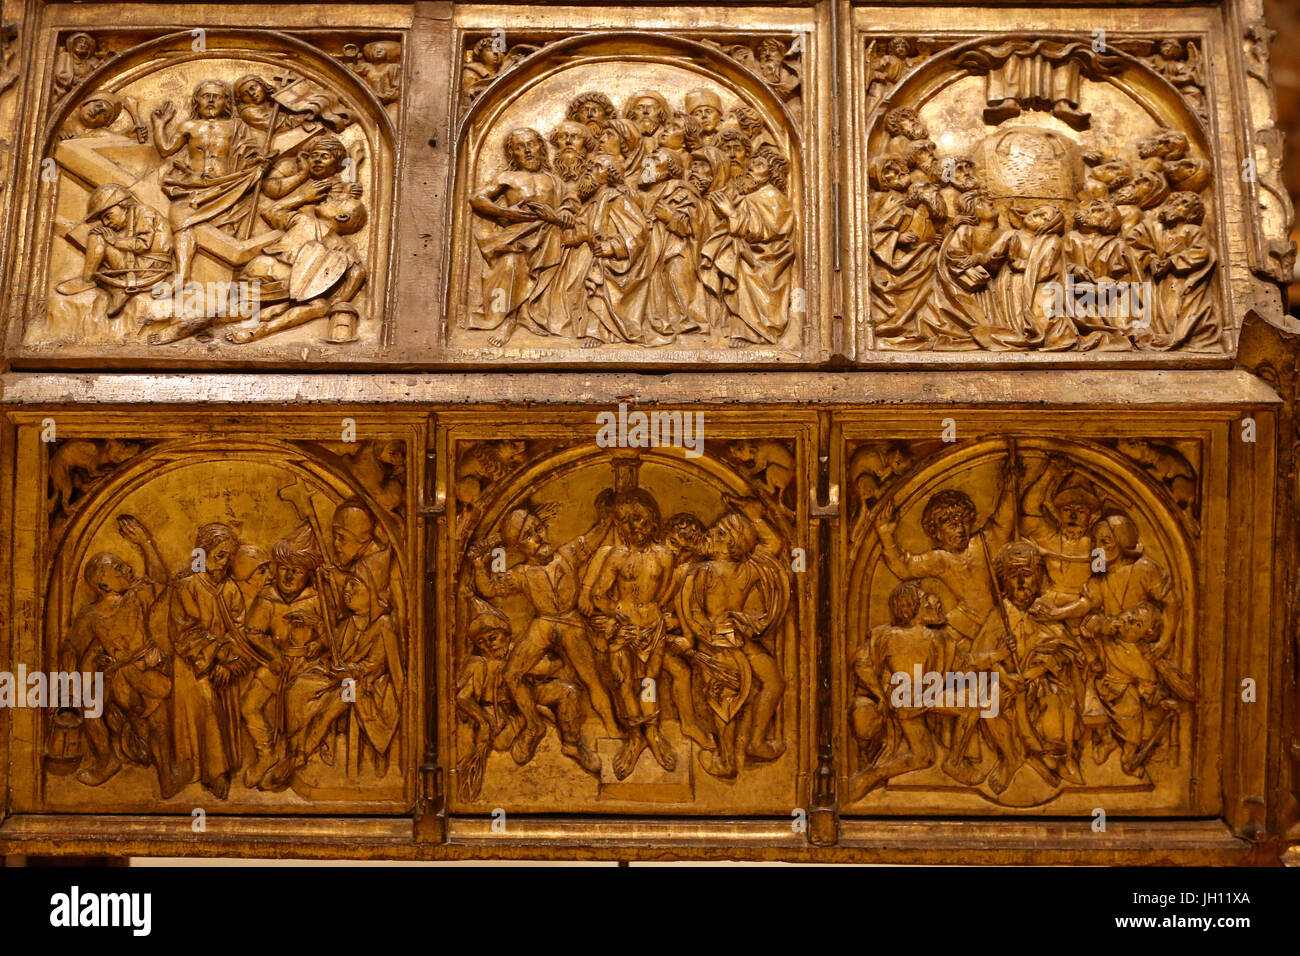 The Victoria and Albert Museum. Reliquary shrine. About 1490-1500. Germany, Konstanz. Limewood, gilded. United kingdom. - Stock Image